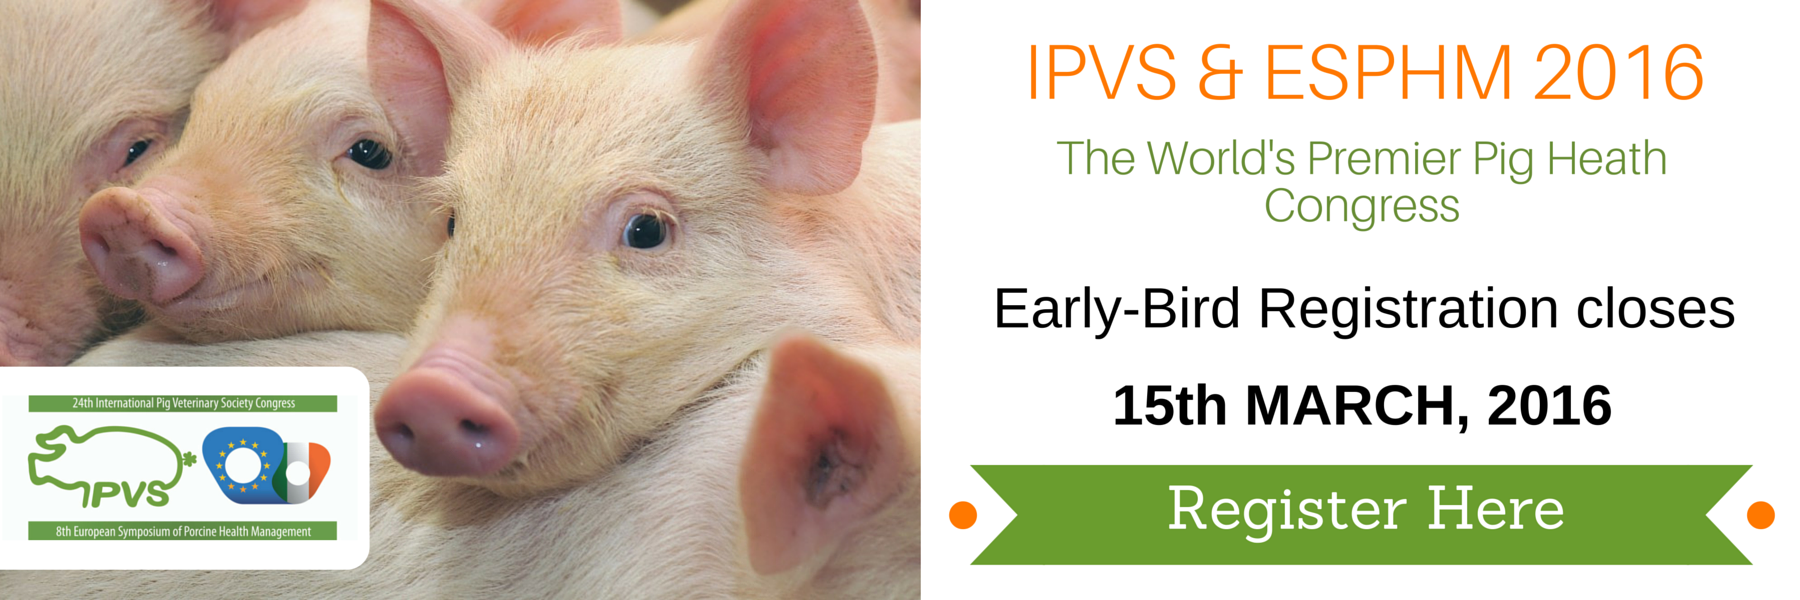 IPVS & ESPHM 2016 - Early-Bird Registration closes